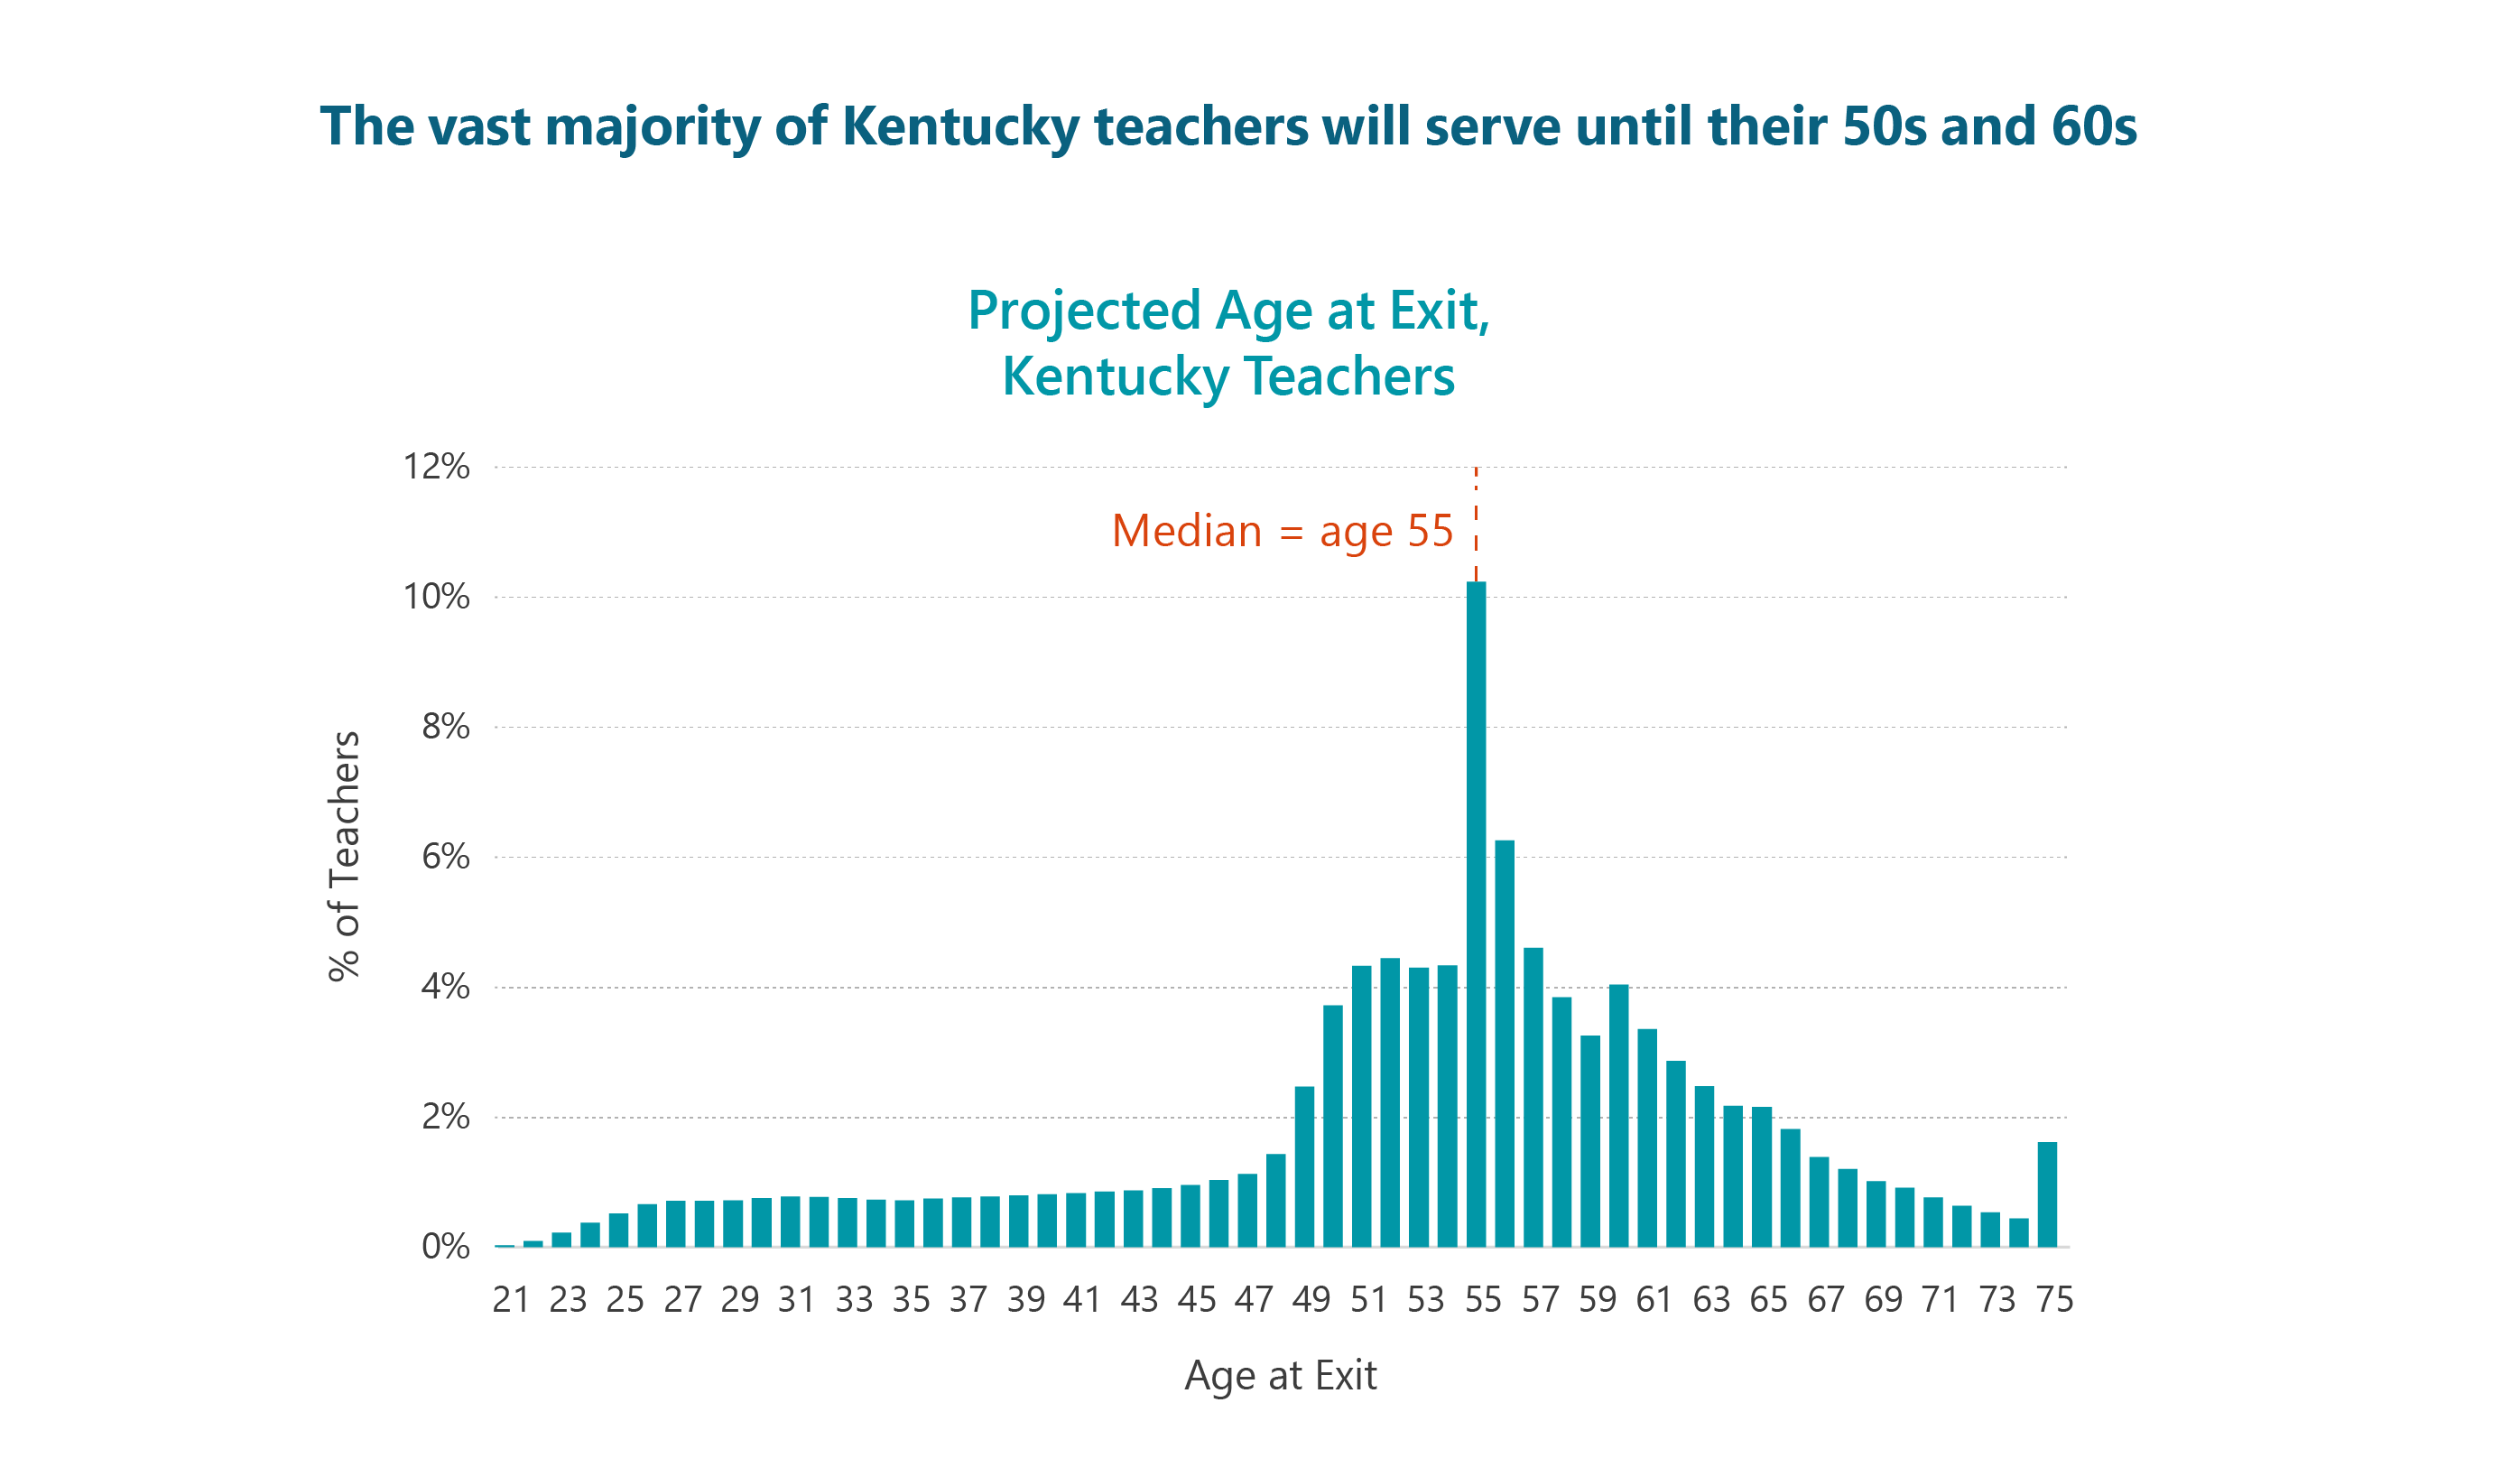 Most Kentucky Teachers Are Significantly Better off with